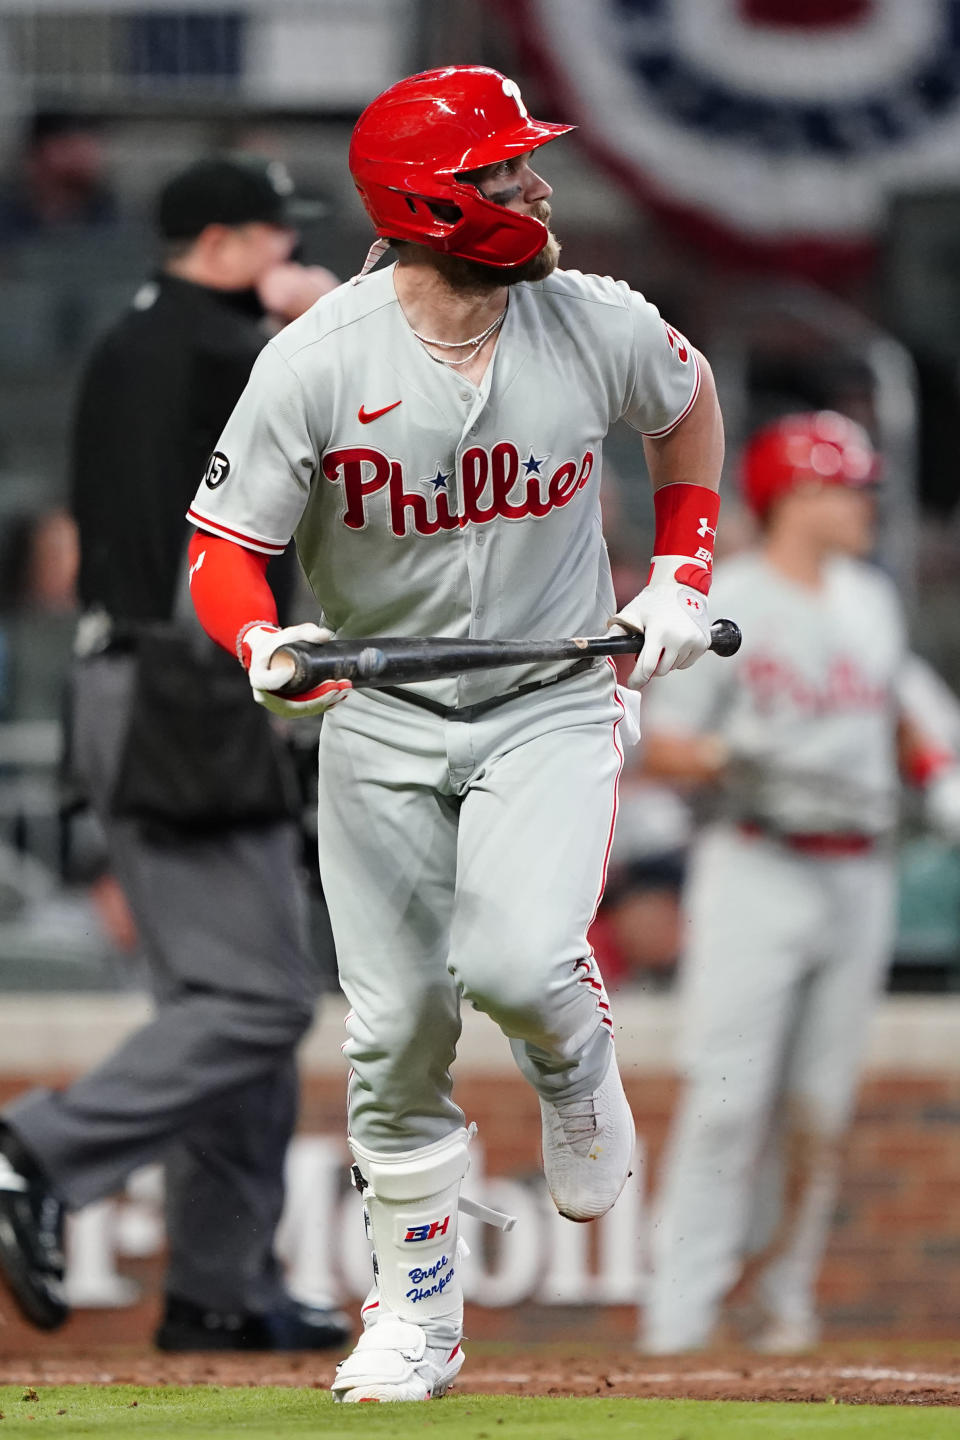 Philadelphia Phillies' Bryce Harper (3) runs to first after hitting a home run in the sixth inning of a baseball game against the Atlanta Braves Sunday, April 11, 2021, in Atlanta. (AP Photo/John Bazemore)